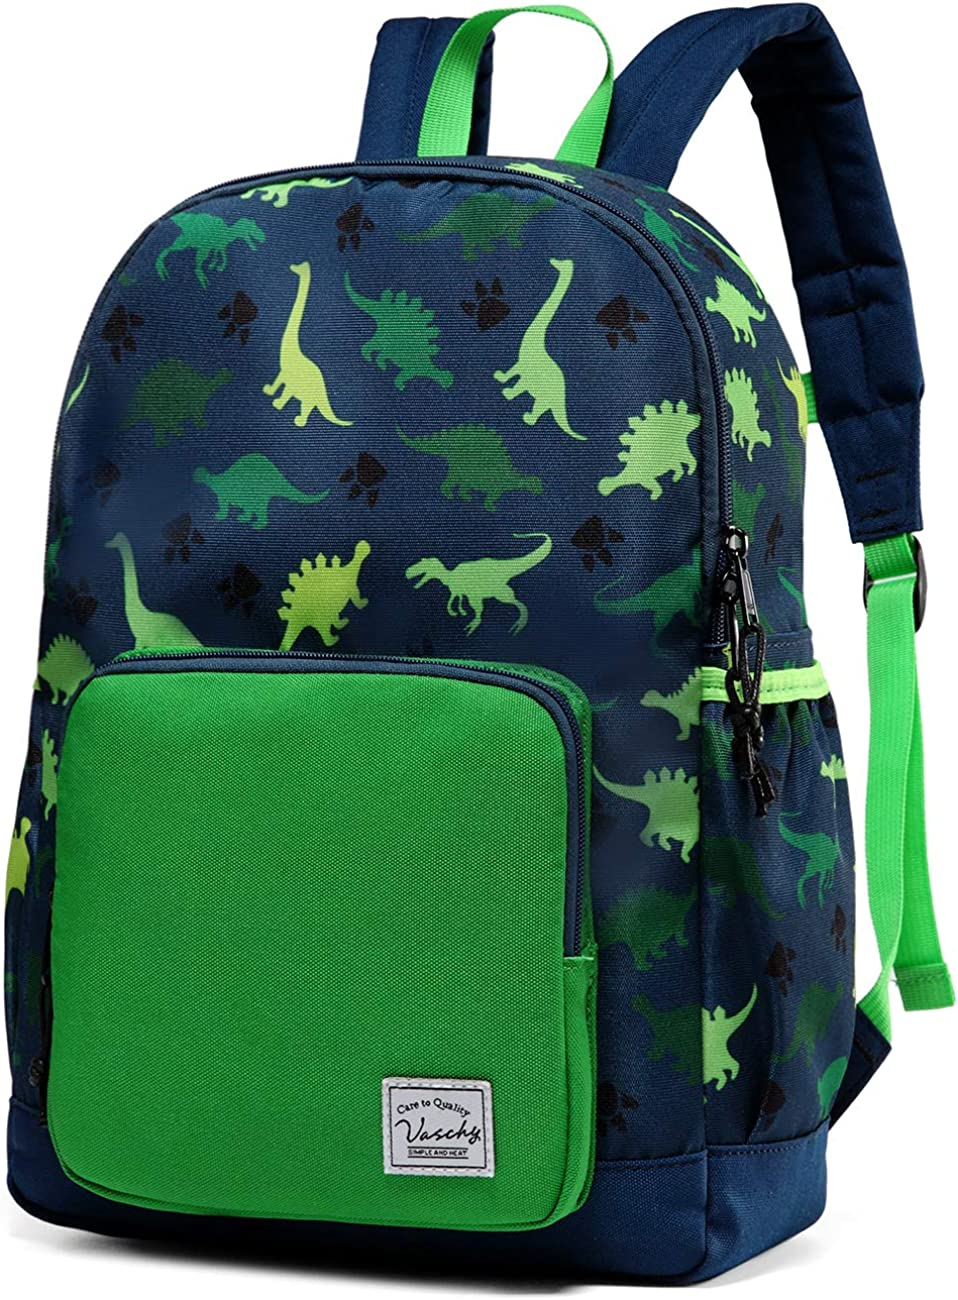 Kids backpacks,VASCHY Cute Lightweight Water Resistant Preschool Backpack for Boys and Girls Chest Strap